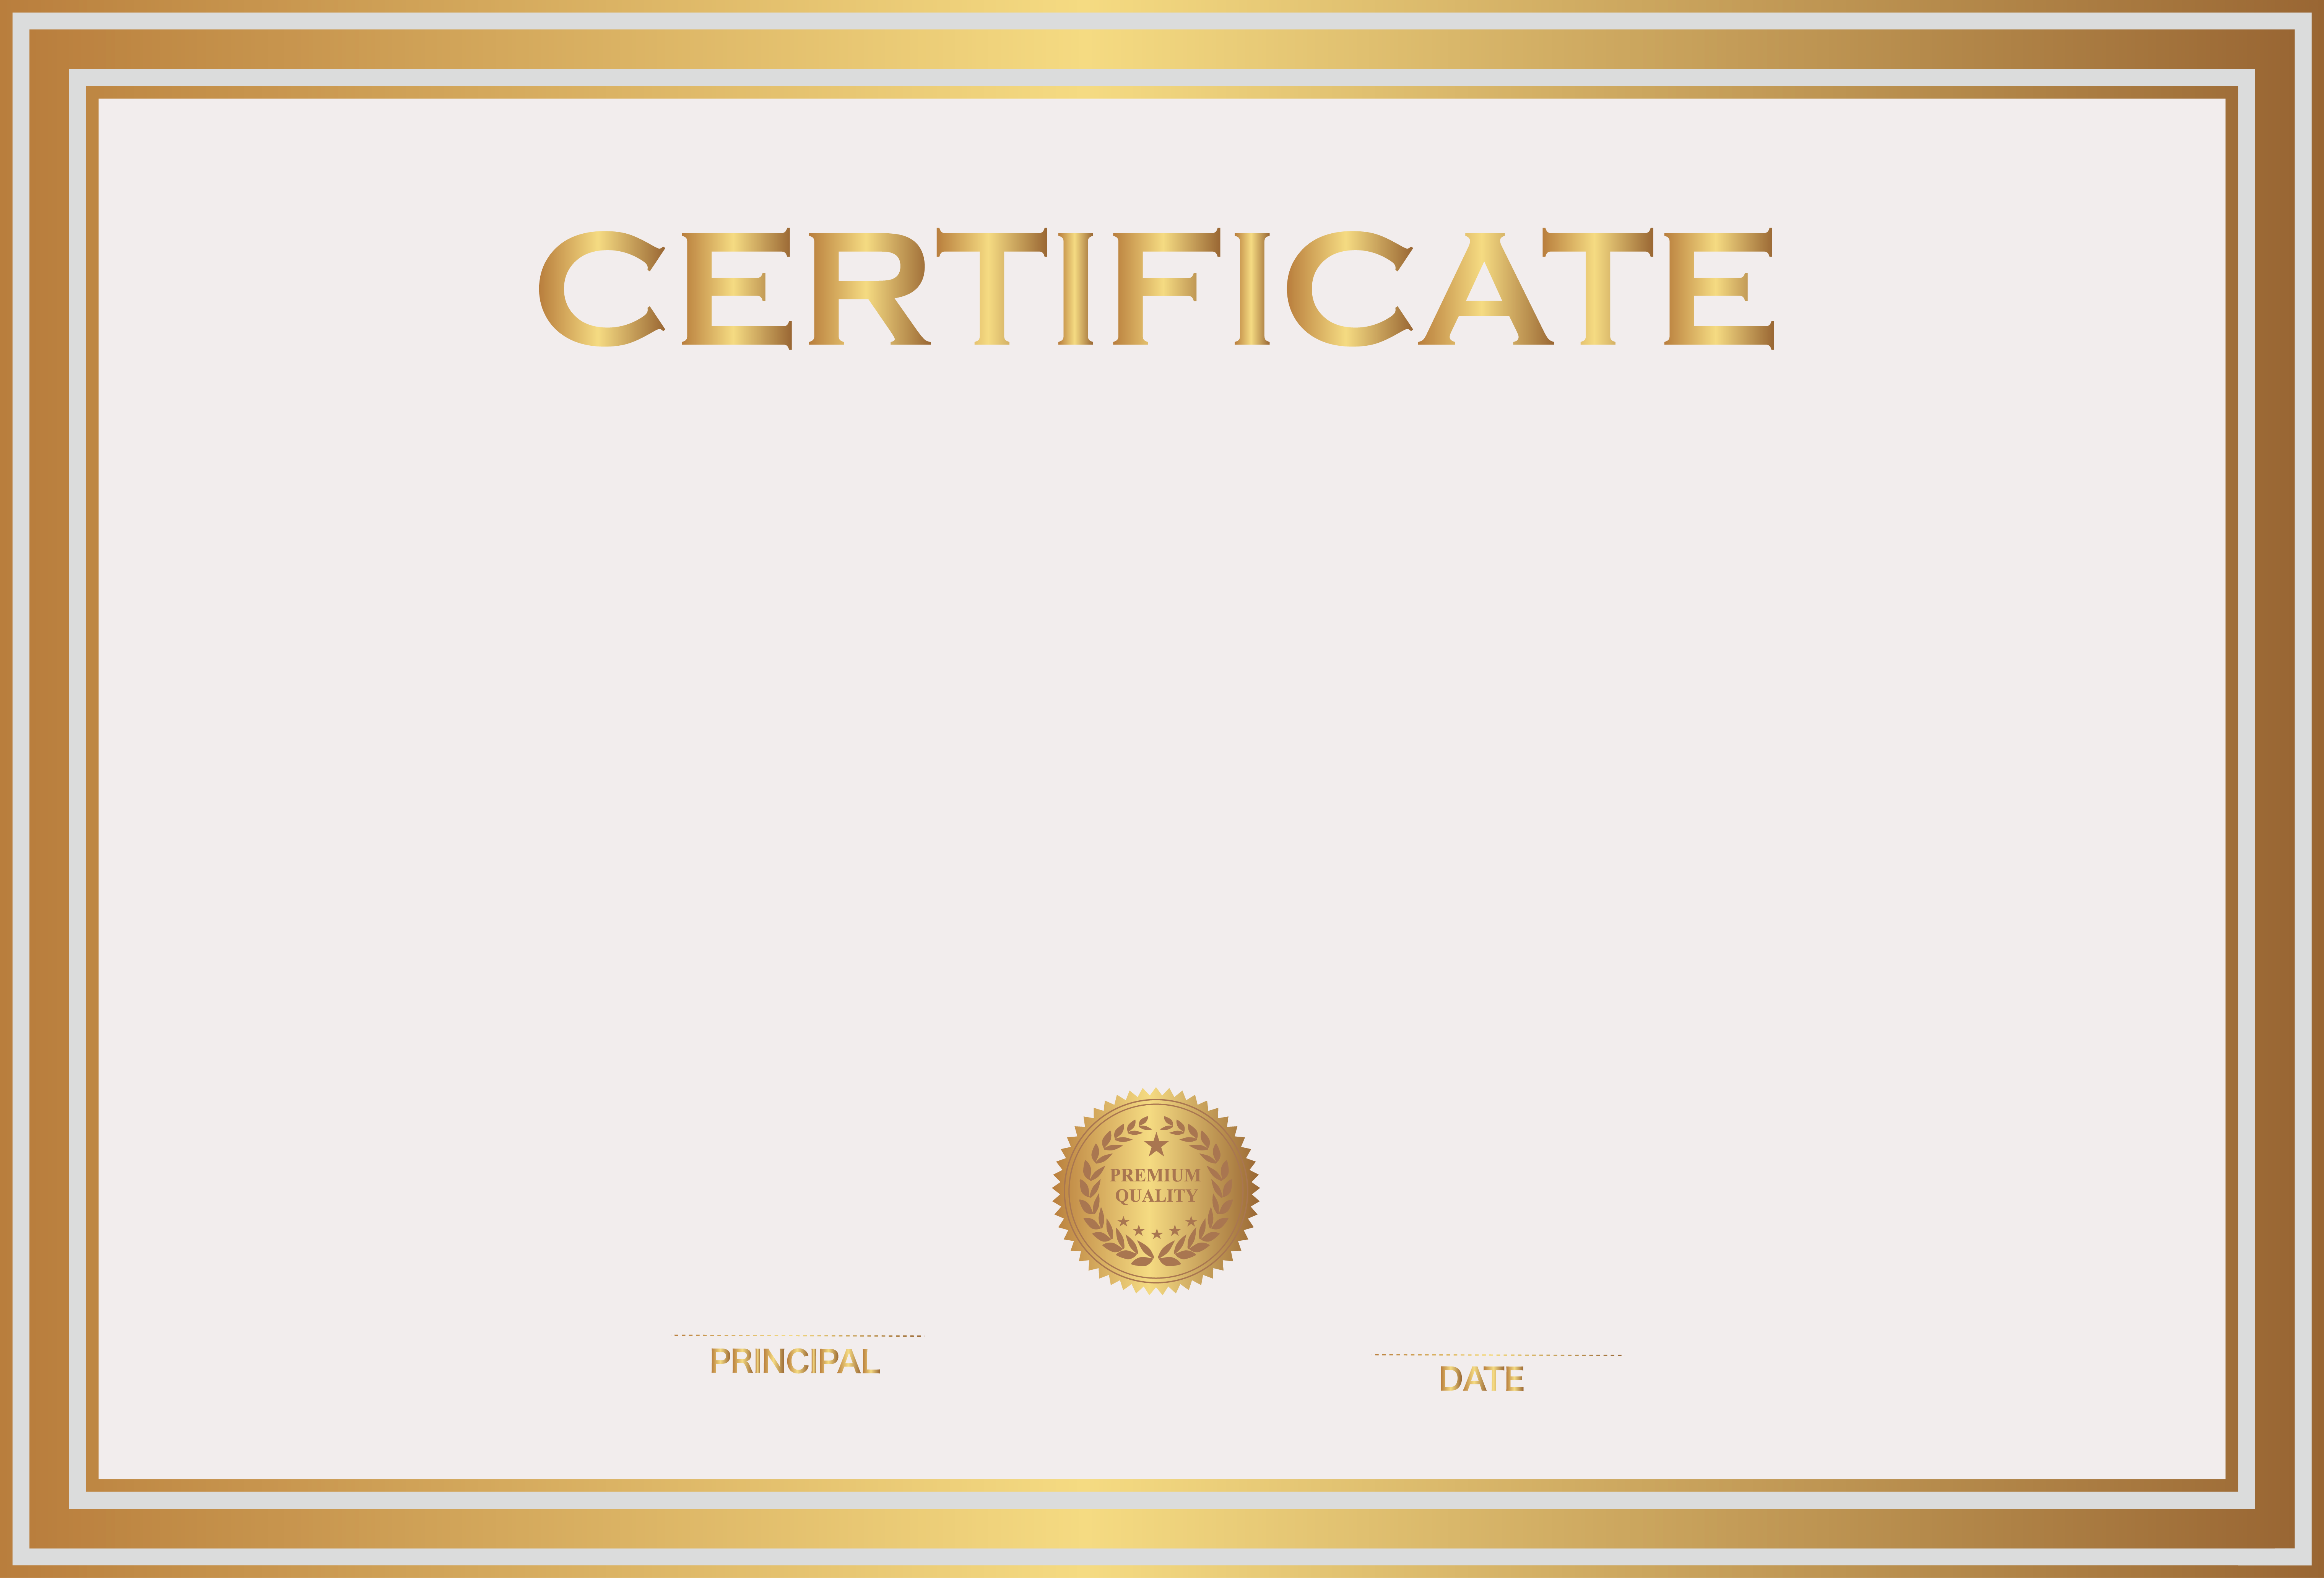 White and Gold Certificate Template PNG Image​ | Gallery